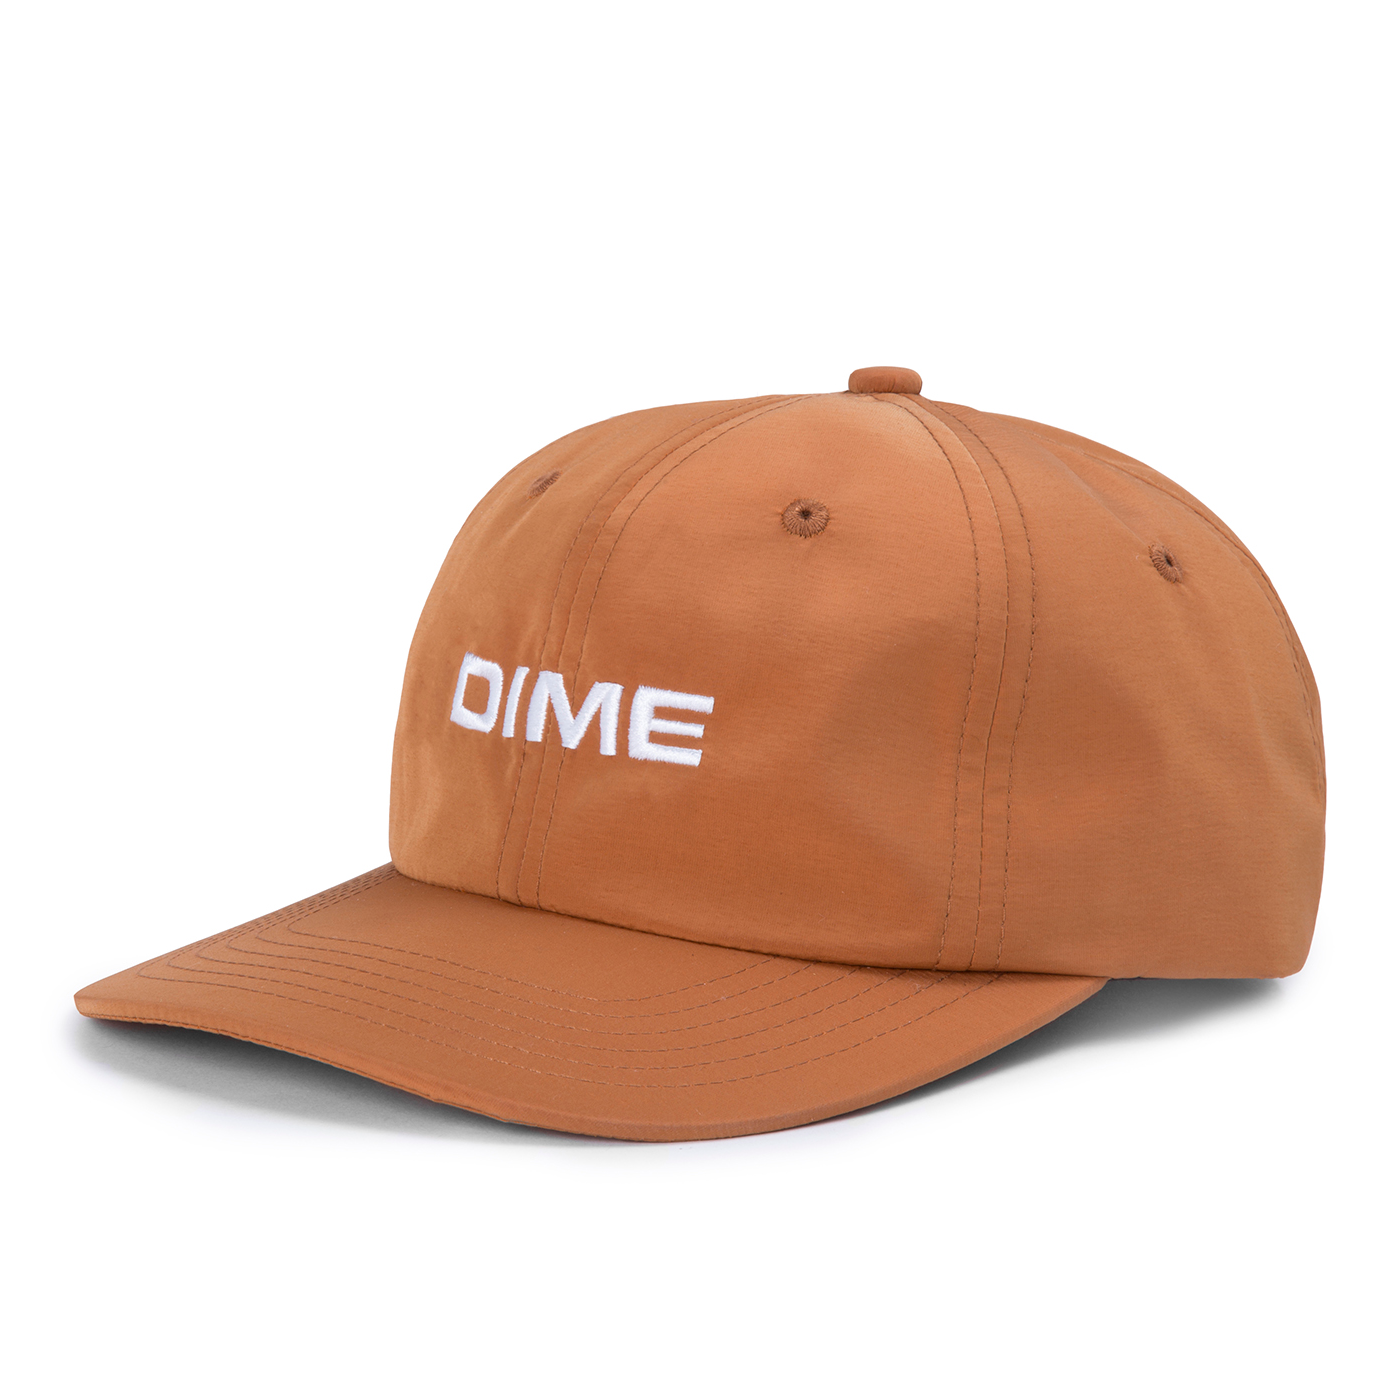 Dime Sea Cop Cap Product Photo #1